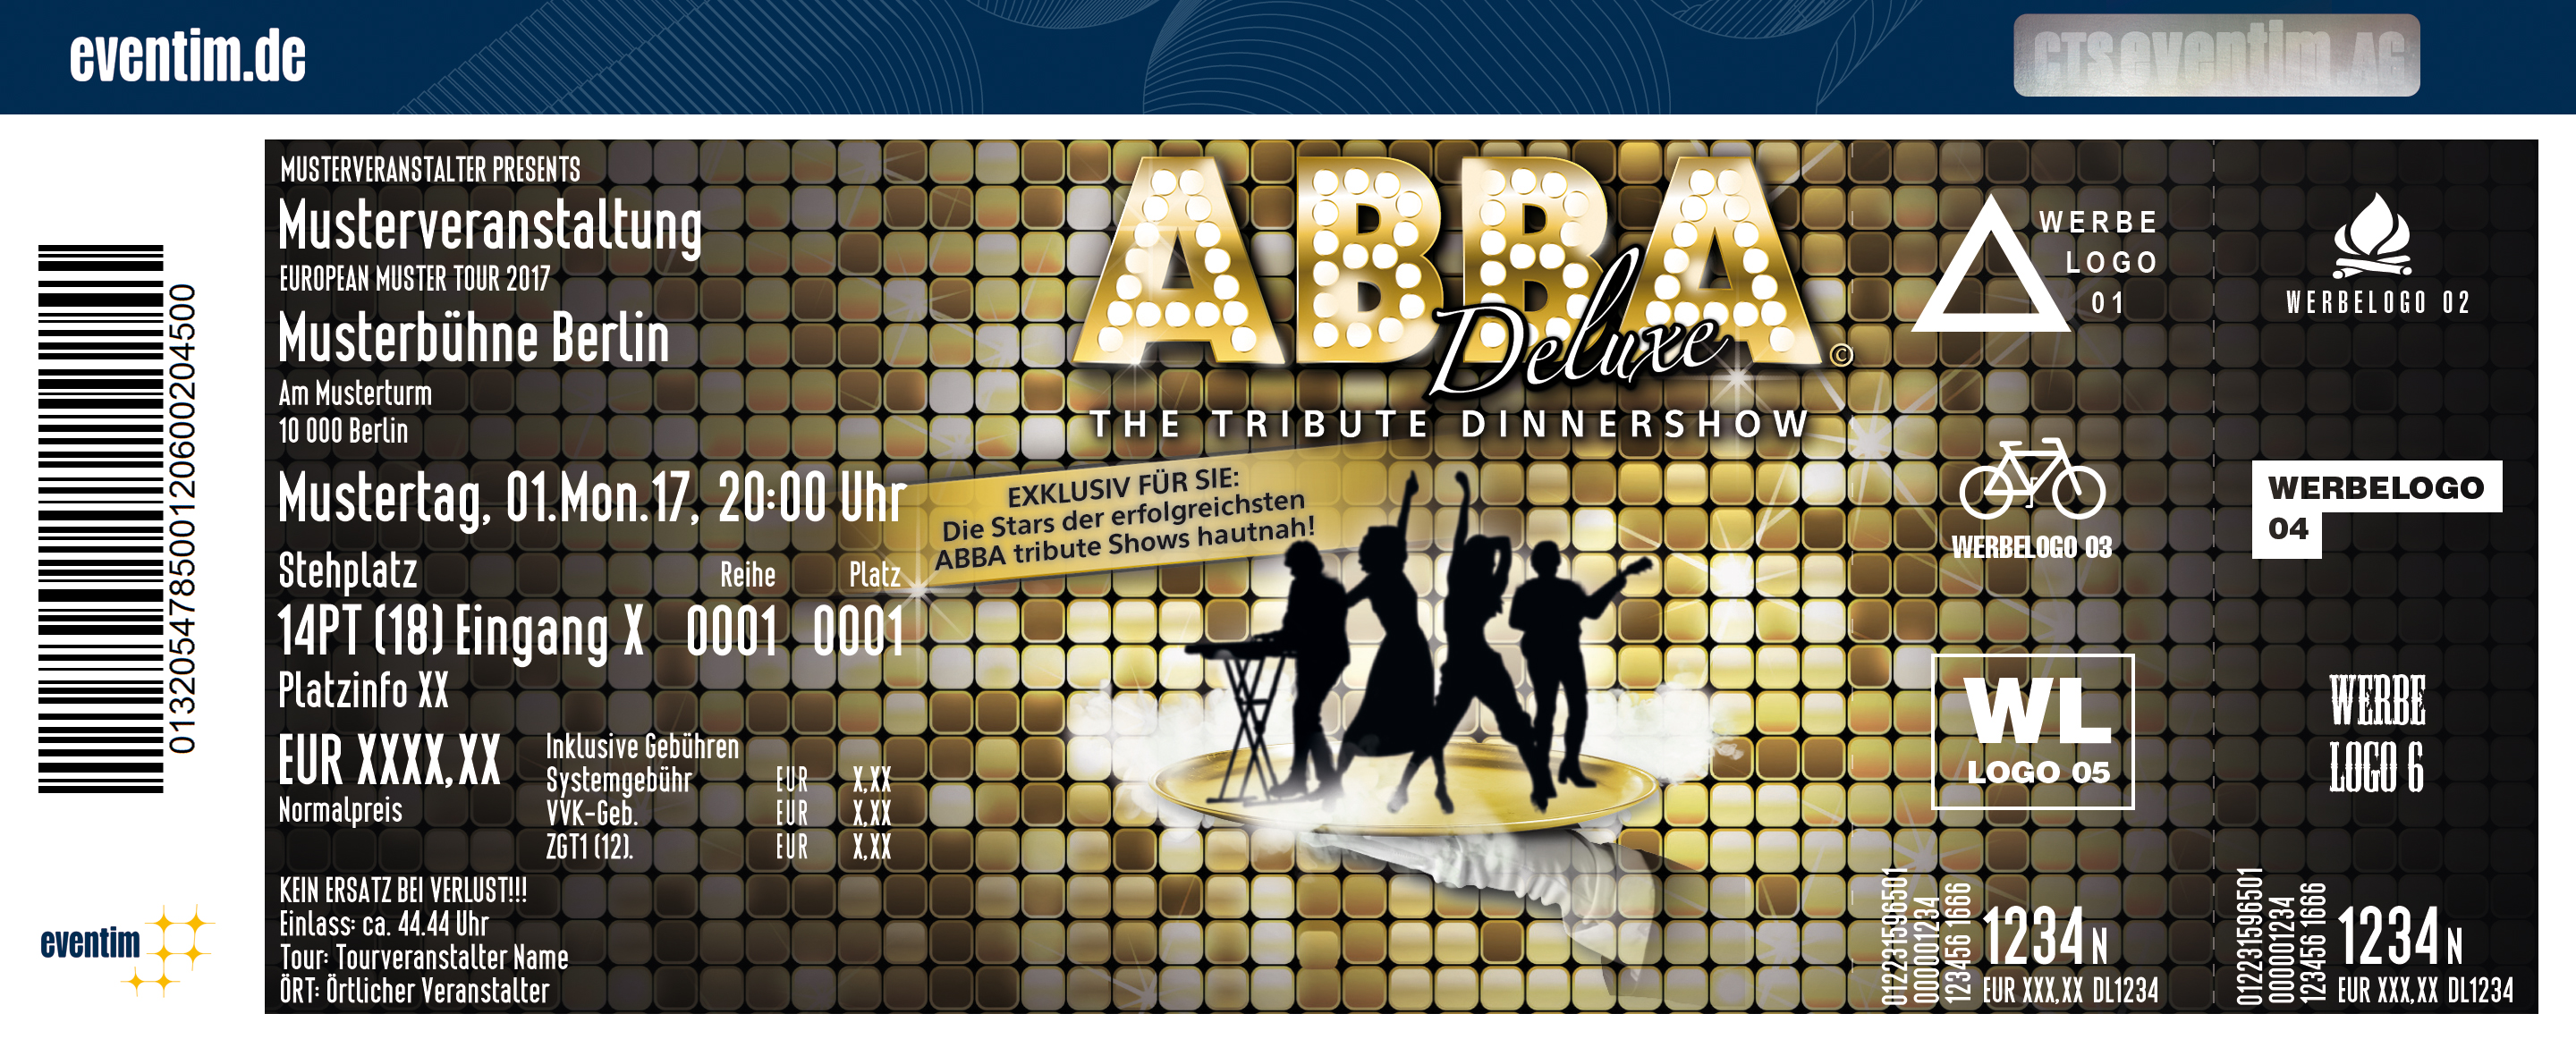 Abba Dinner - The Tribute Dinnershow Karten für ihre Events 2018